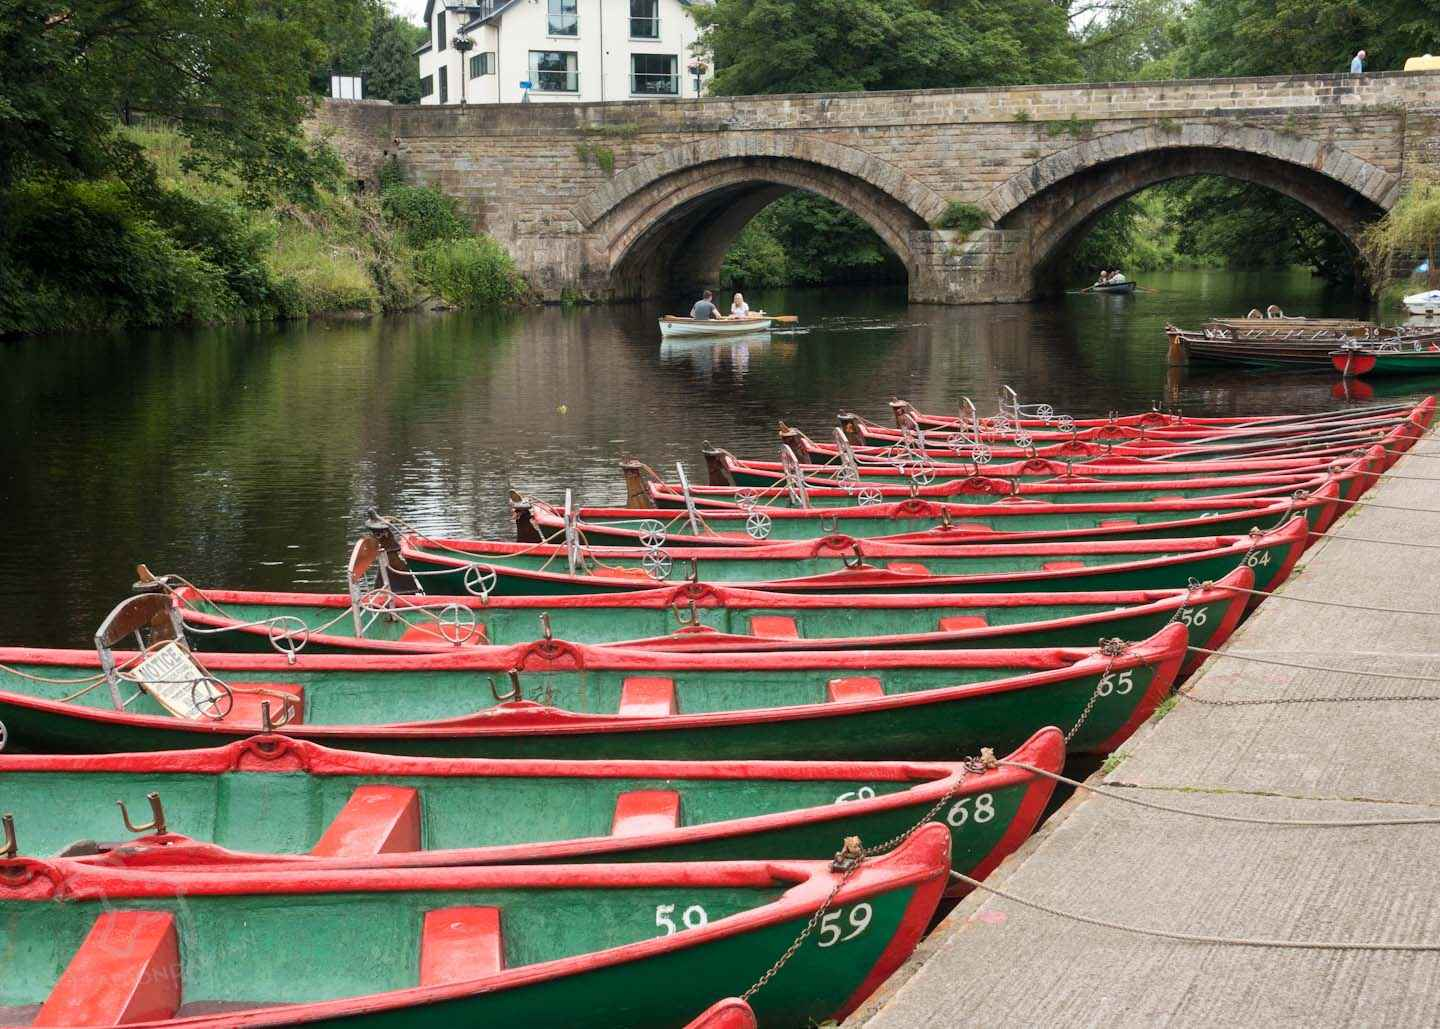 Visitor information for the river Nidd at Knaresborough Waterside in North Yorkshire. See the rowing boats and use these repeating pattern photo composition tips. Visit Knaresborough Waterside and try Repeating Pattern Photo Composition on Falcondale Life blog. Image description: a line of rowing boats moored on the Nidd near High Bridge.